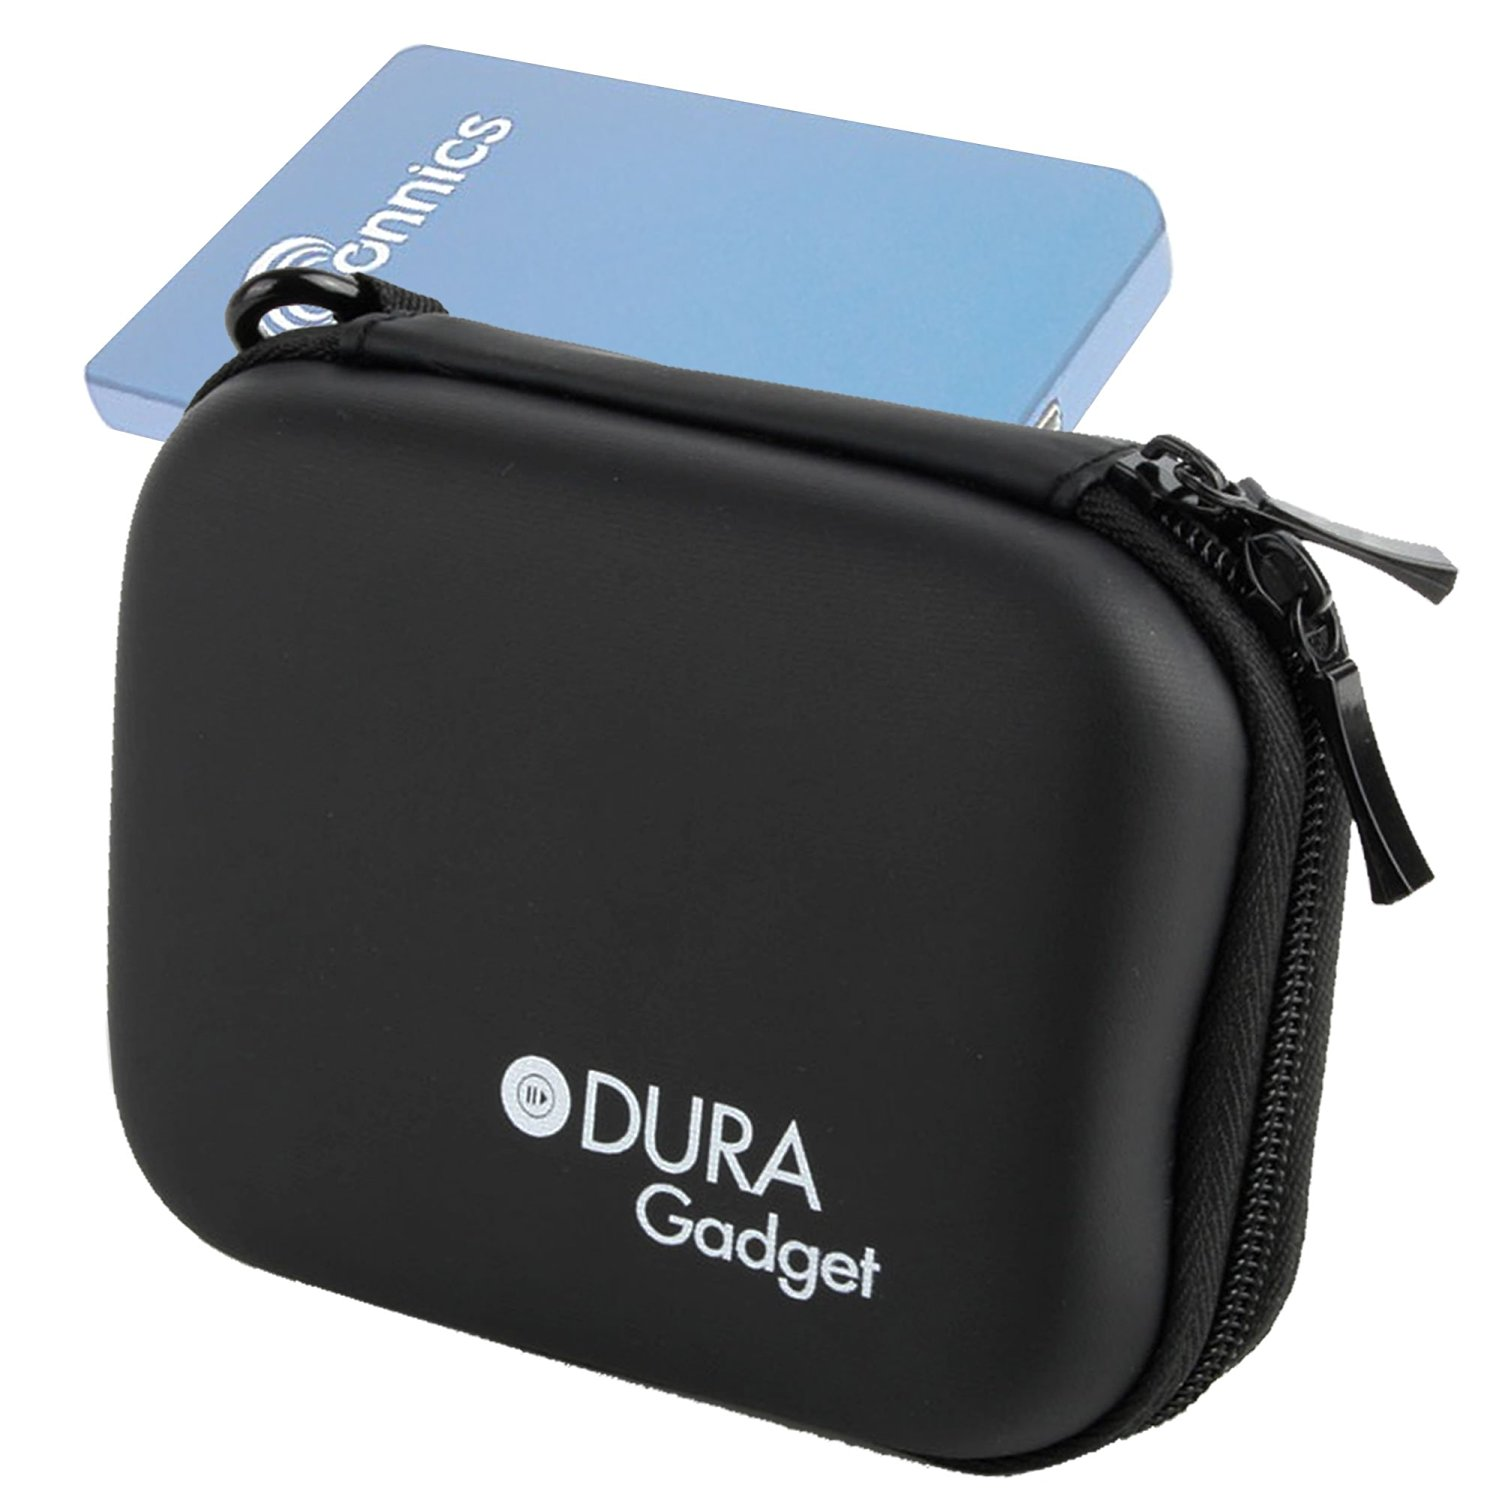 DURAGADGET Hardwearing Jet Black EVA Case With Soft Lining For The Sonnics 750GB 2.5 Inch External Pocket Sized USB Hard Drive (Black, Blue, Silver, Pink)